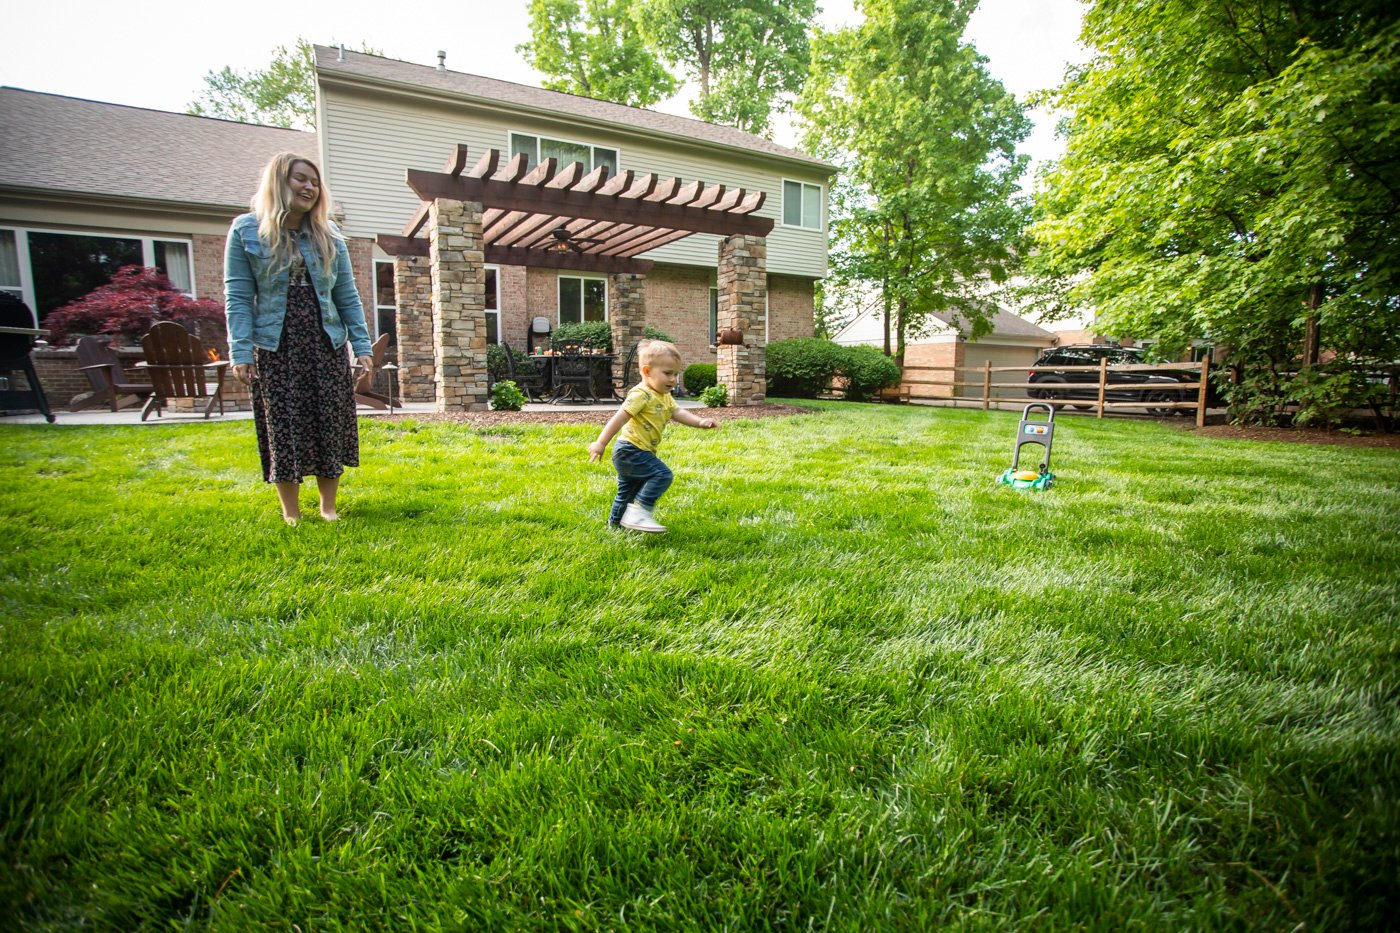 environmentally responsible lawn care customers in lawn